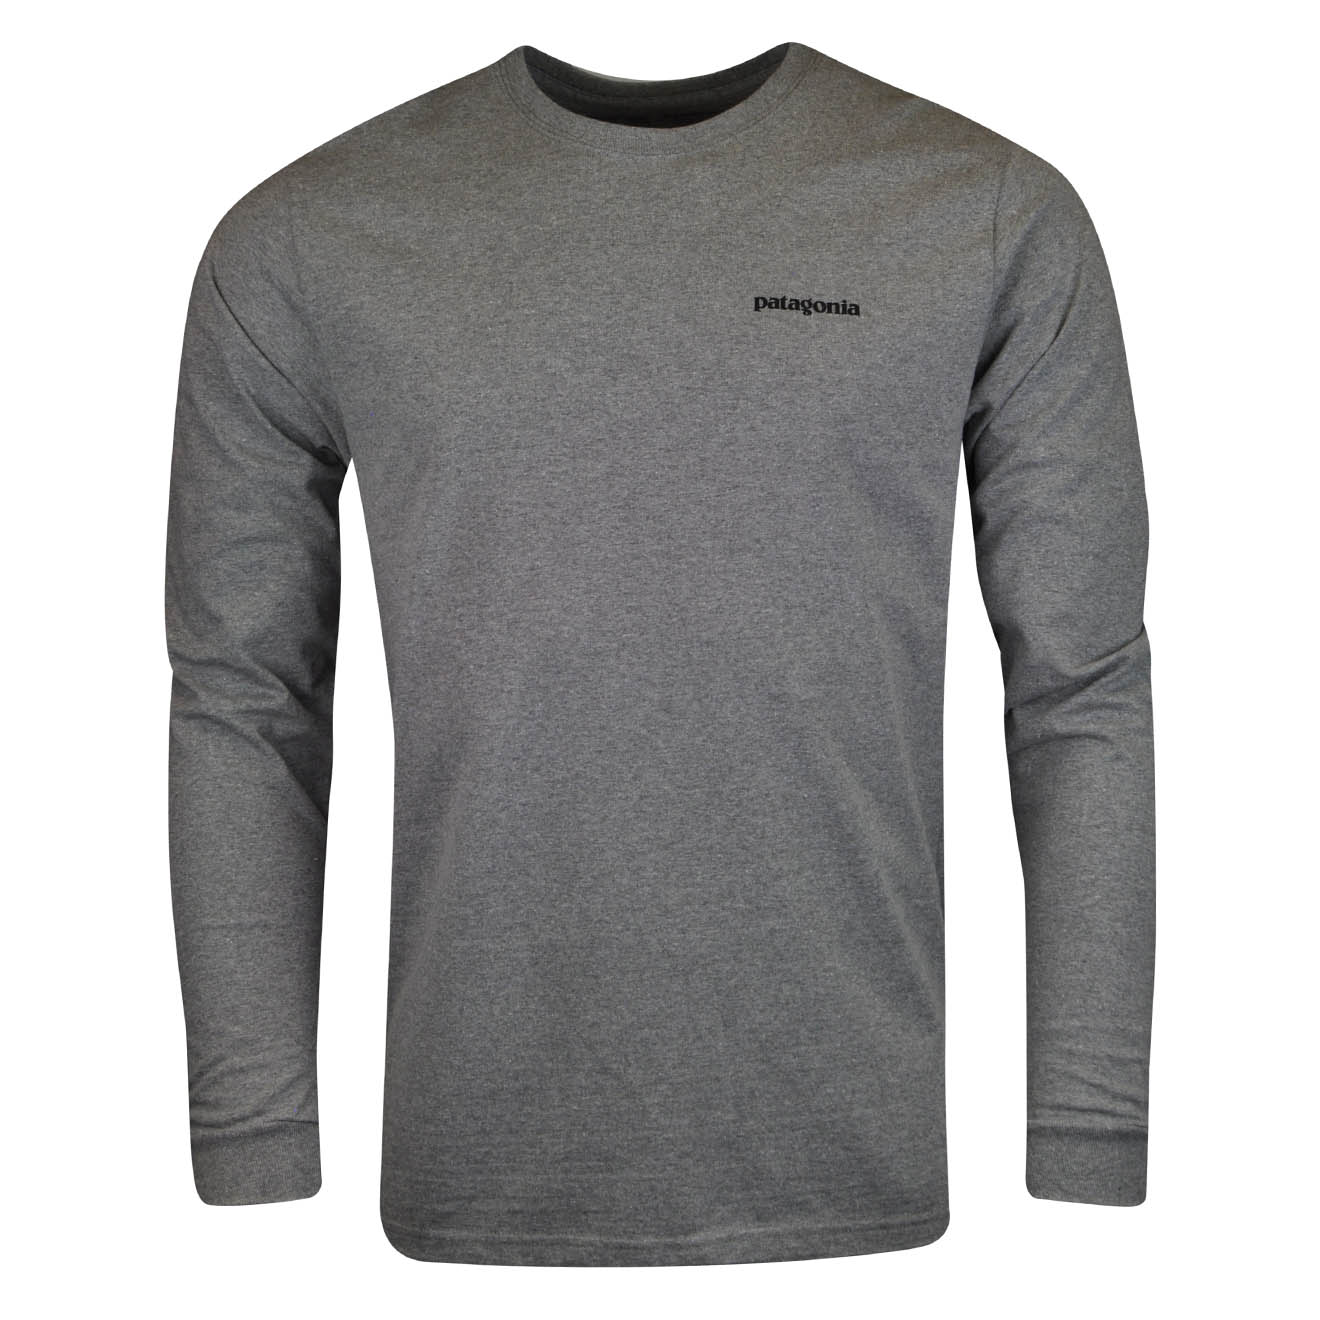 05add1c73441 Details about Patagonia Long Sleeve P-6 Logo Responsibili-Tee Gravel Heather